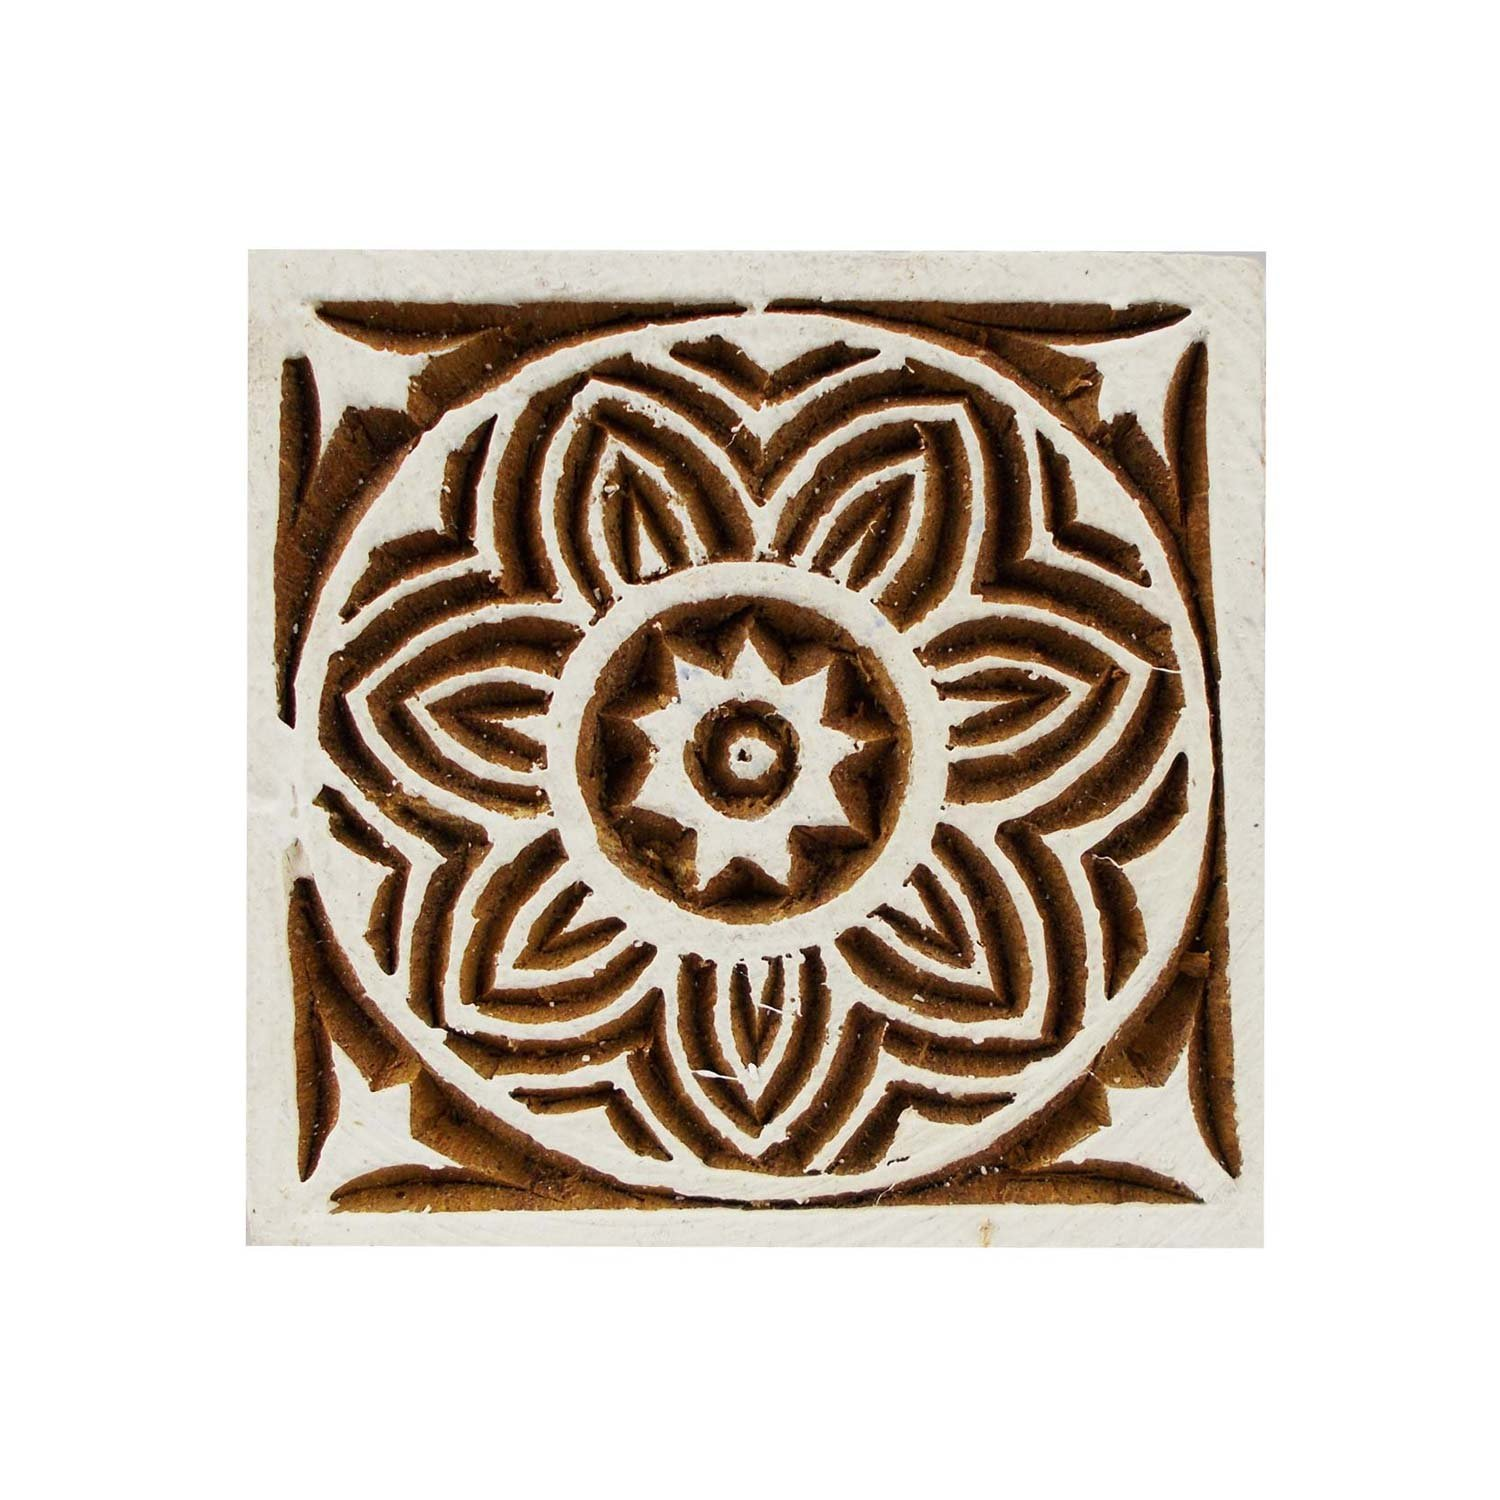 Square Celtic Knot Motif Wooden Printing Block Stamps Textile Print Tattoo Clay Pottery Blocks TeT